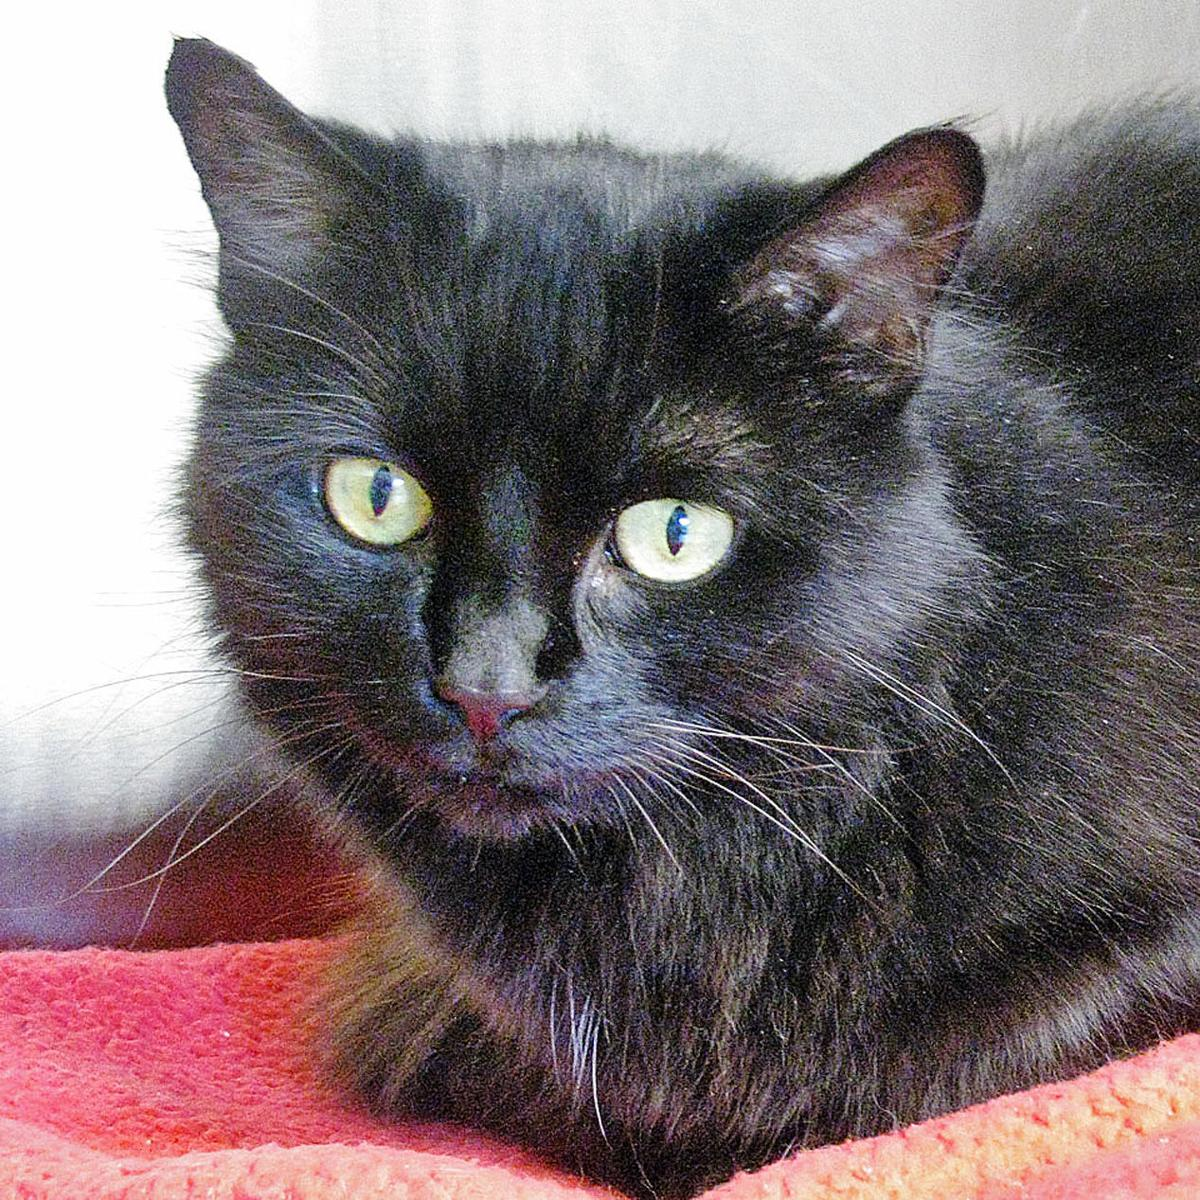 People For Cats - September 6, 2019 | Falmouth | capenews net